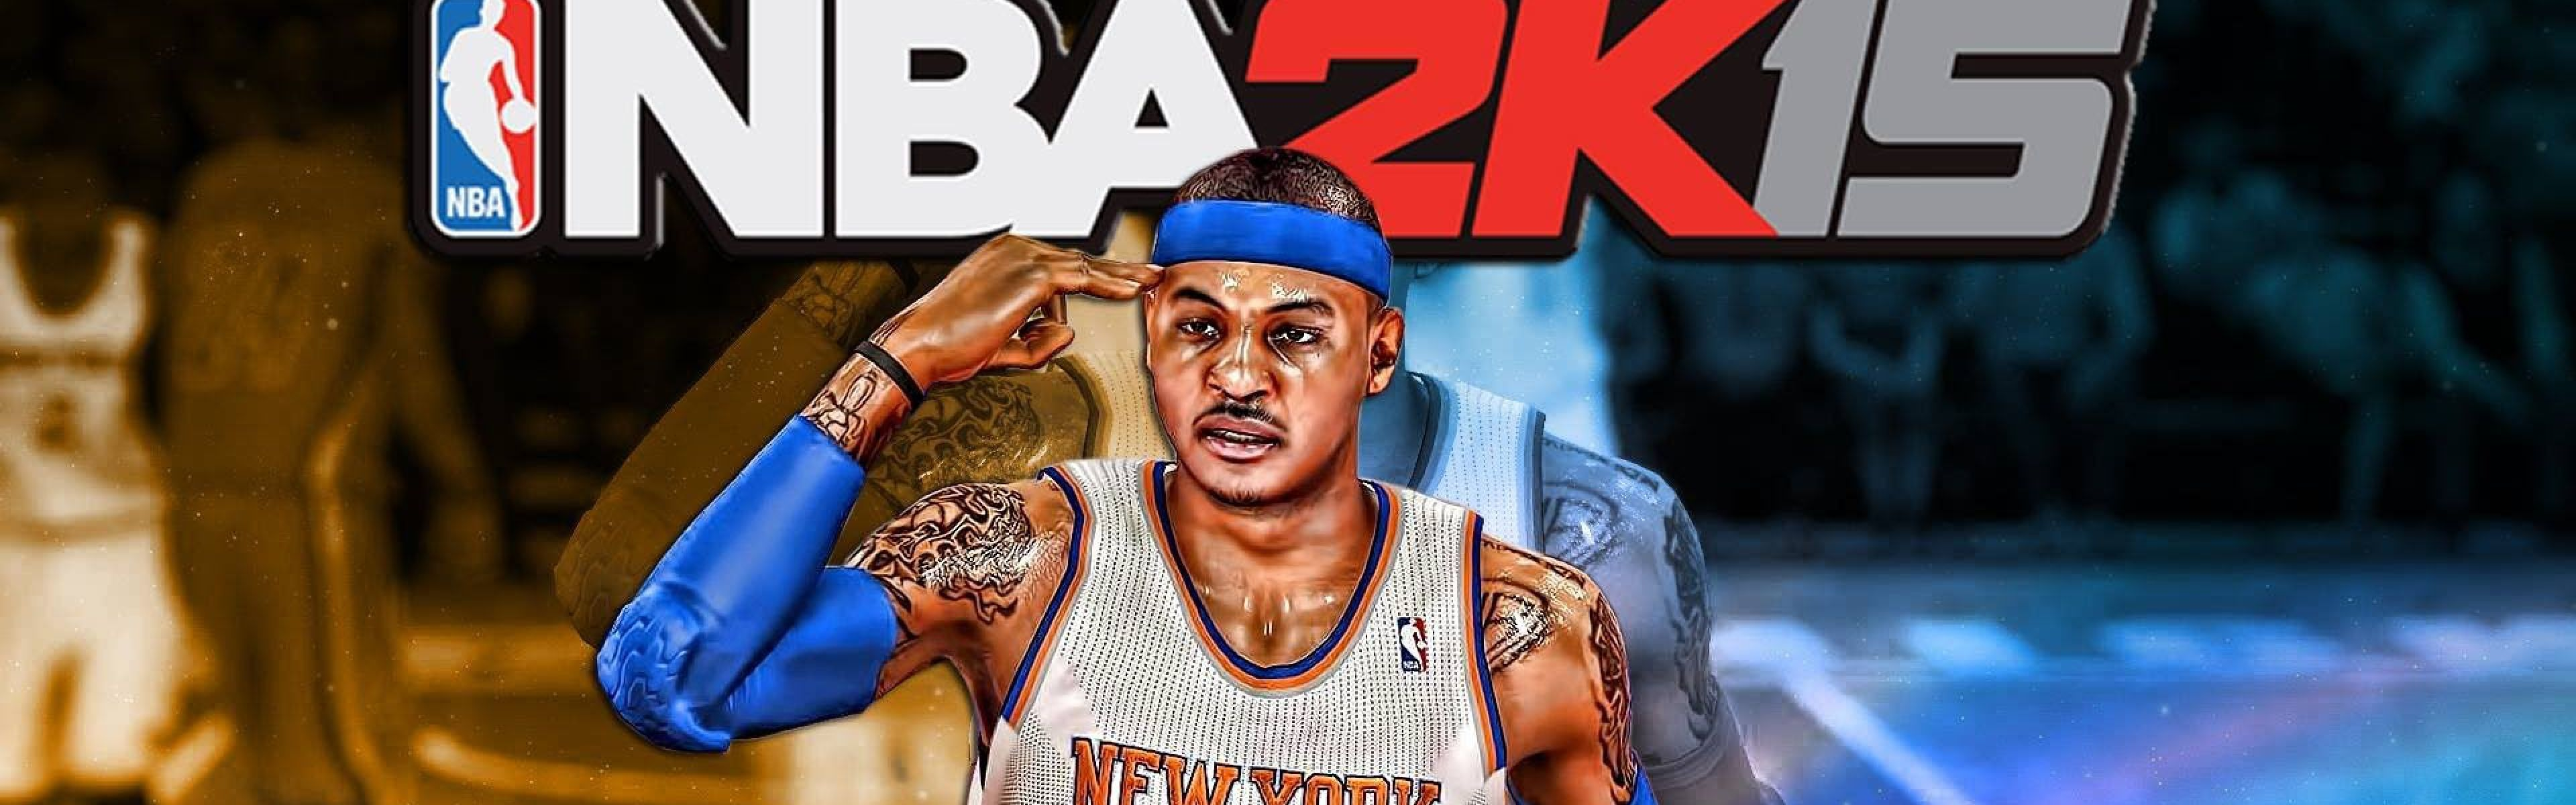 Nba k android apk a k free download for tablet and art nba k android apk a k free download for tablet and voltagebd Choice Image